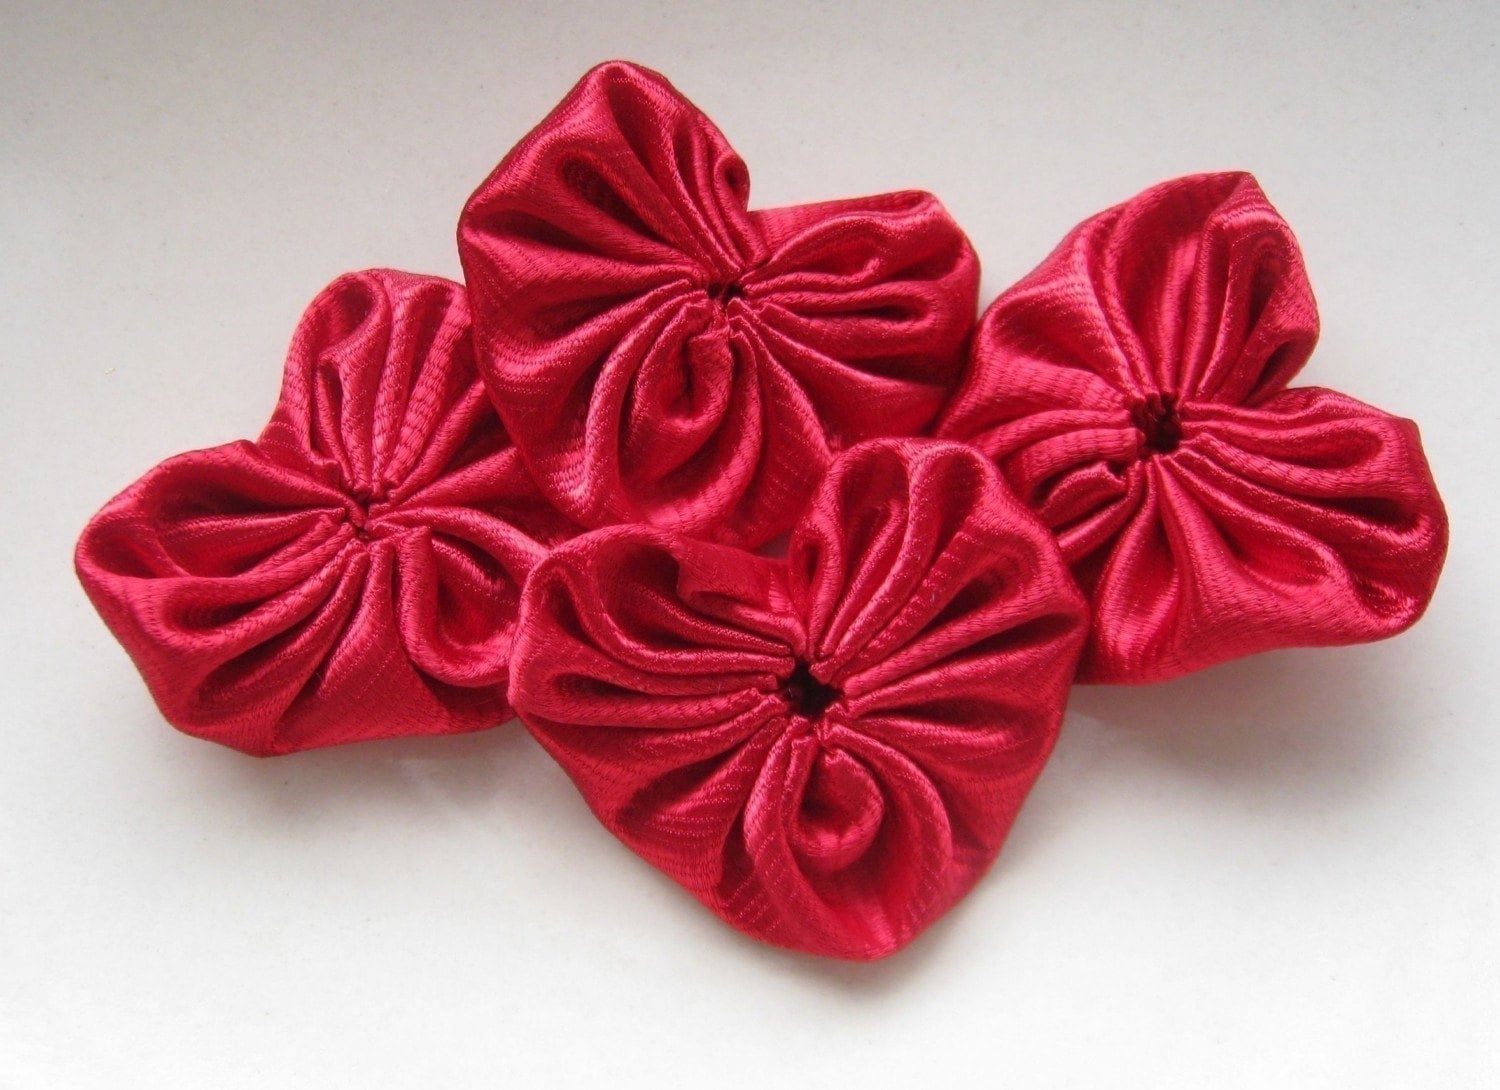 Handmade Red Satin Heart Appliques  4 pieces by ILoveYoYo on Etsy from etsy.com